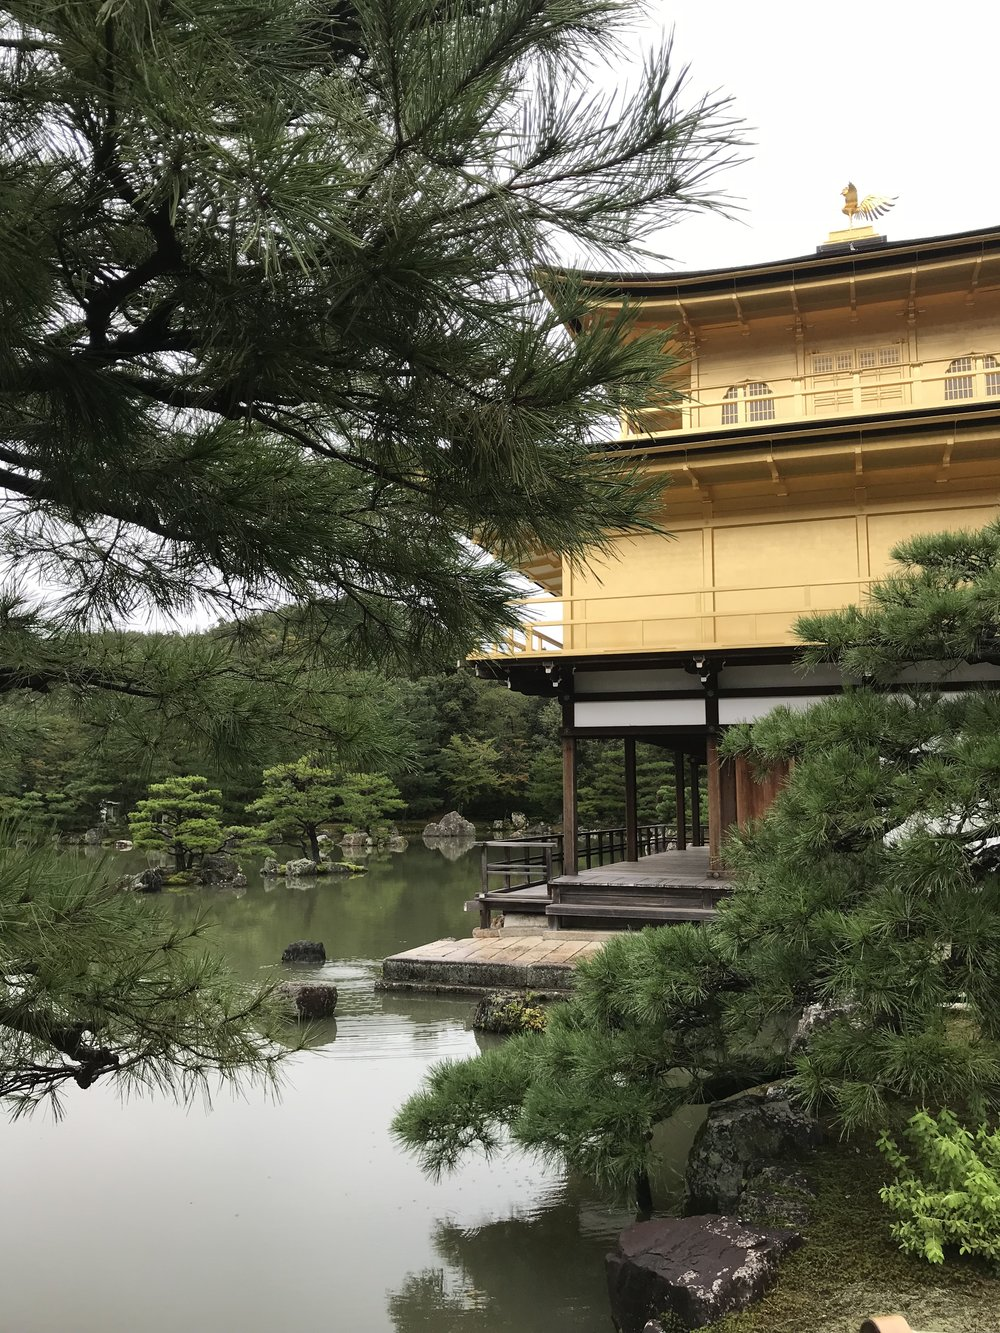 Kinkaku-ji Golden Temple, Kyoto